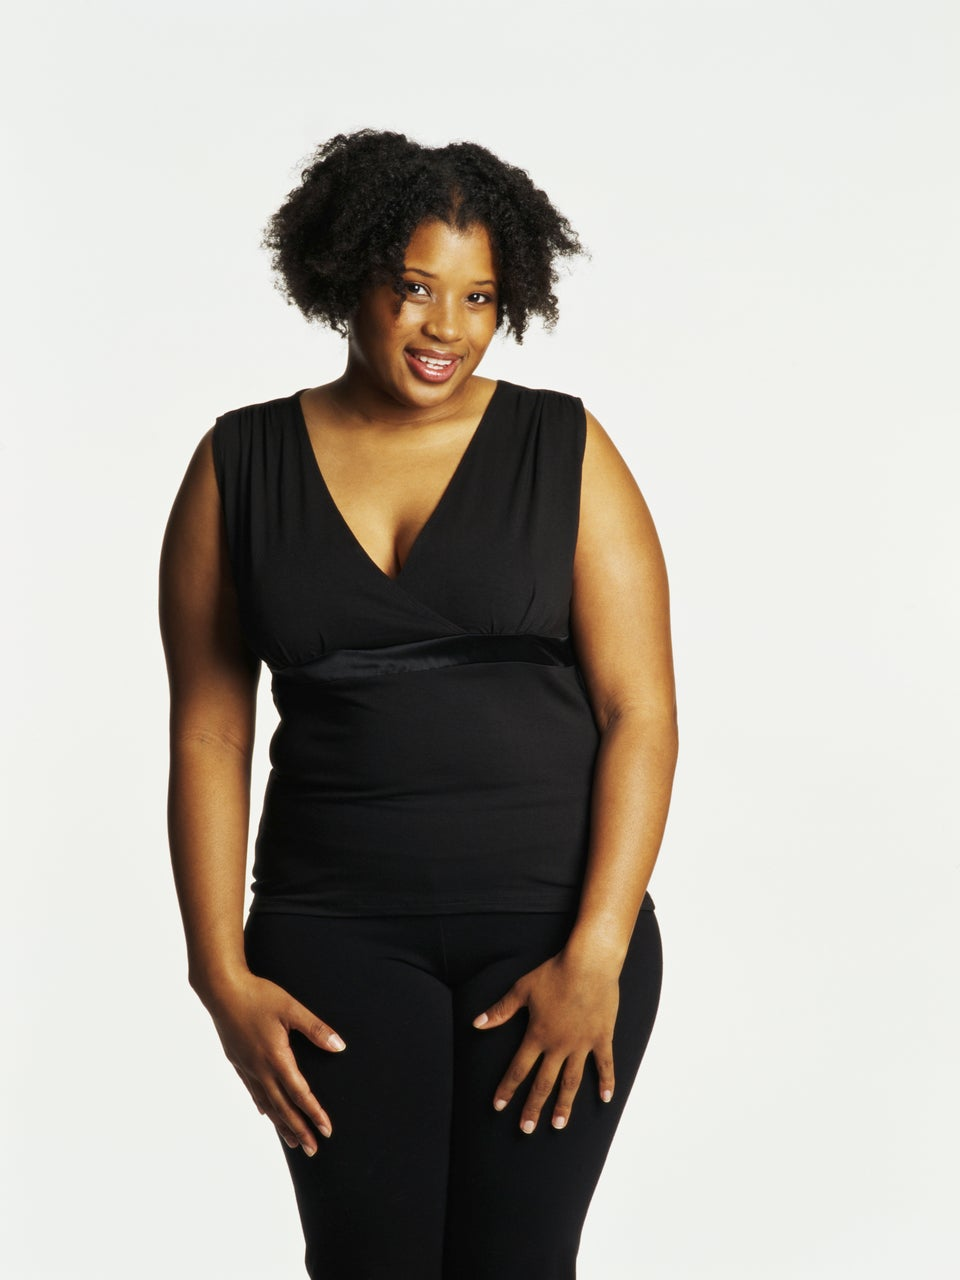 ESSENCE Poll: What Are the Biggest Fashion Challenges Curvy Women Face?